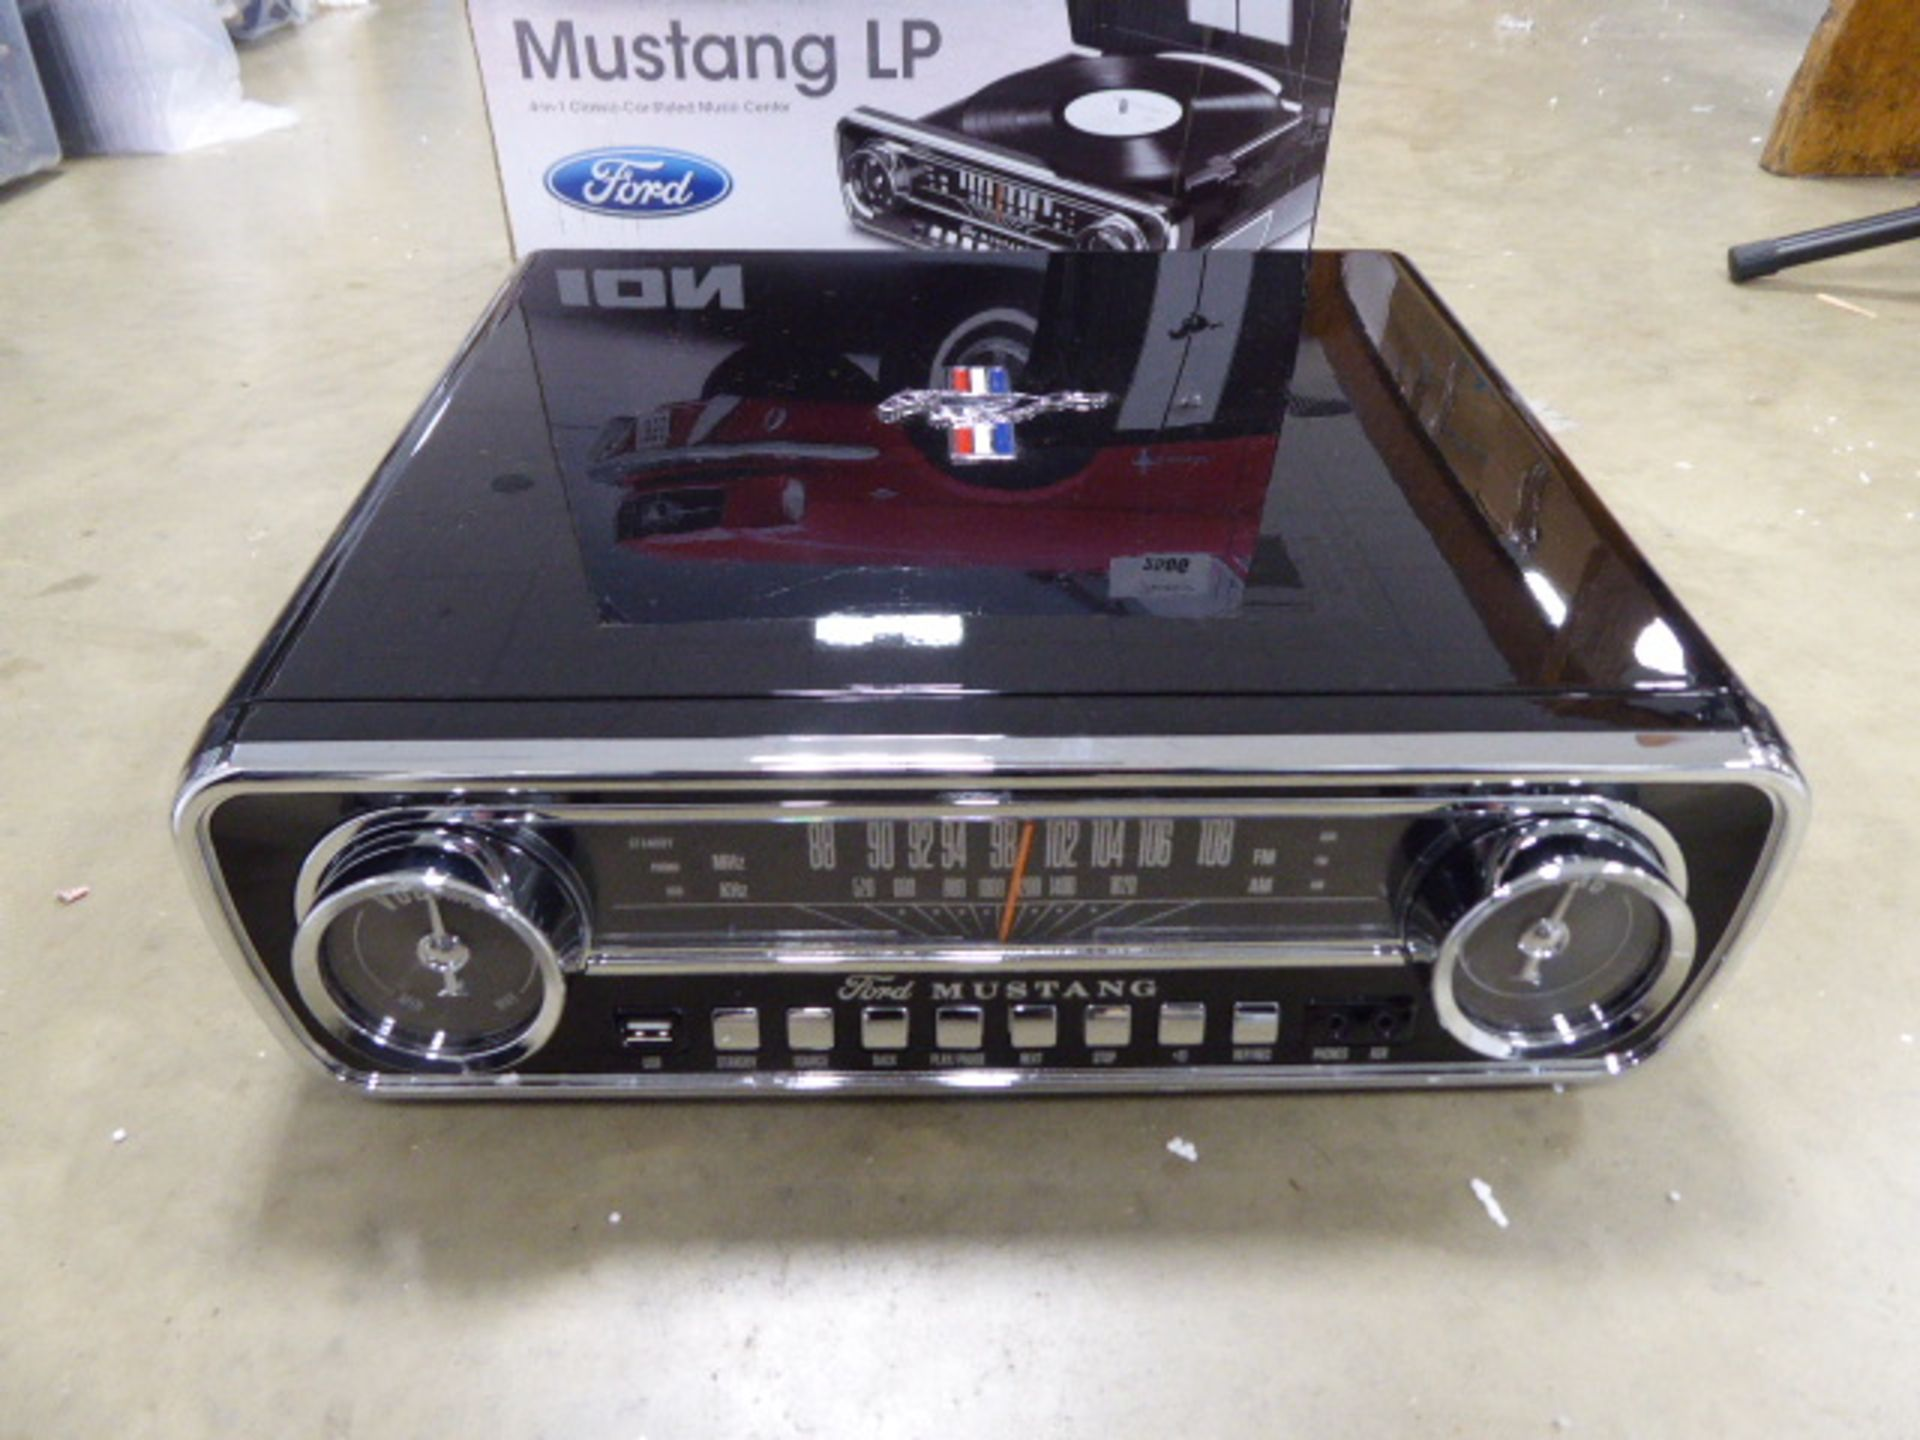 Ion mustang LP 4 in 1 classic car style music sensor in box - Image 2 of 3